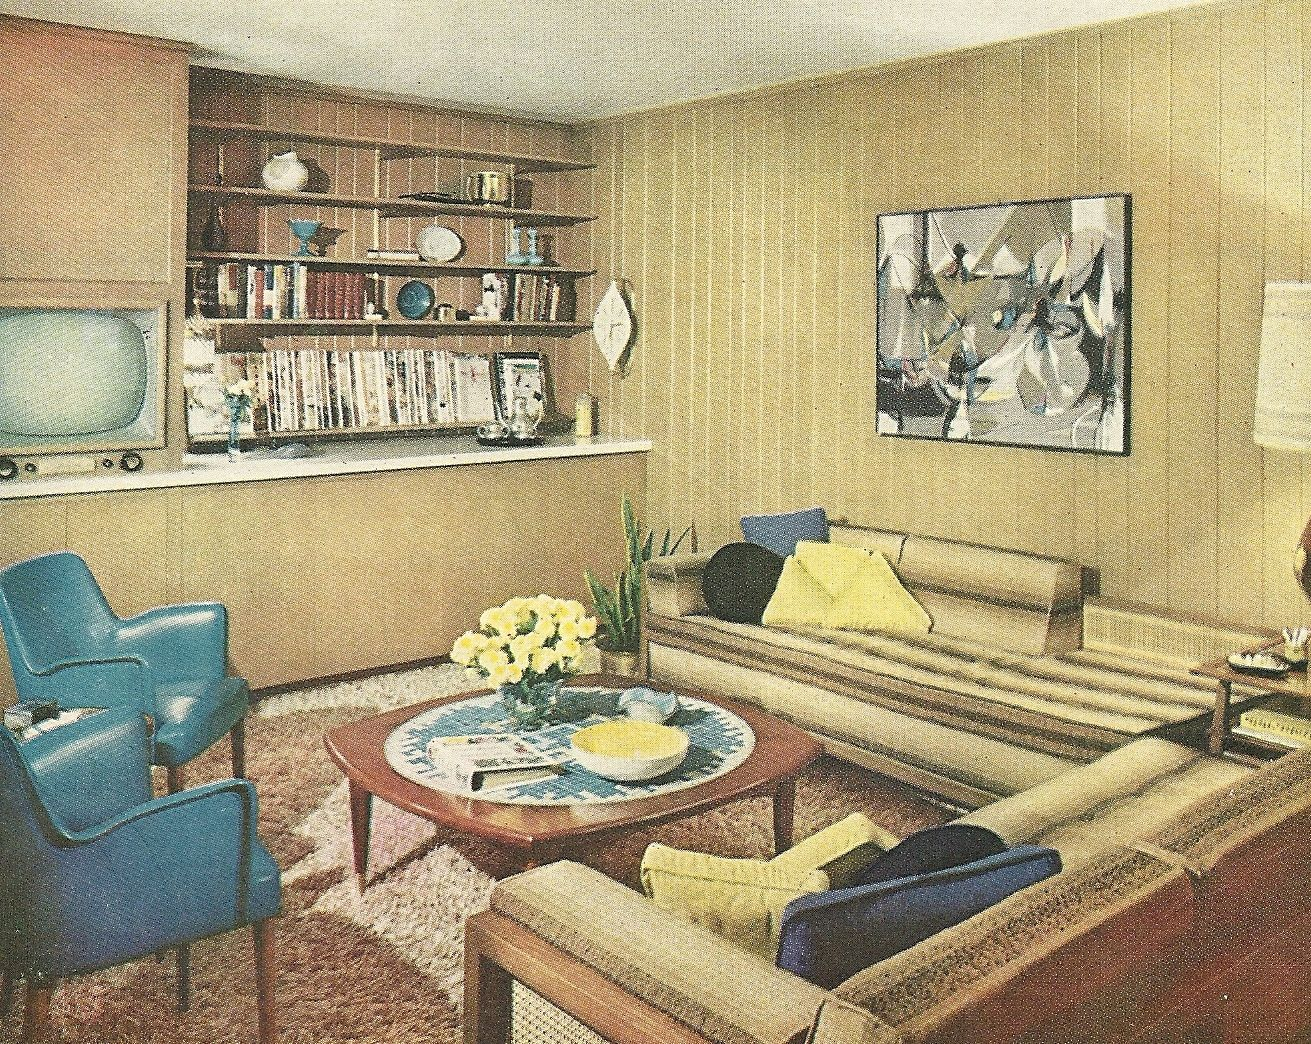 Retro Home Decor Vintage Home Decorating 1960s Colorful Rooms Posted On March 6